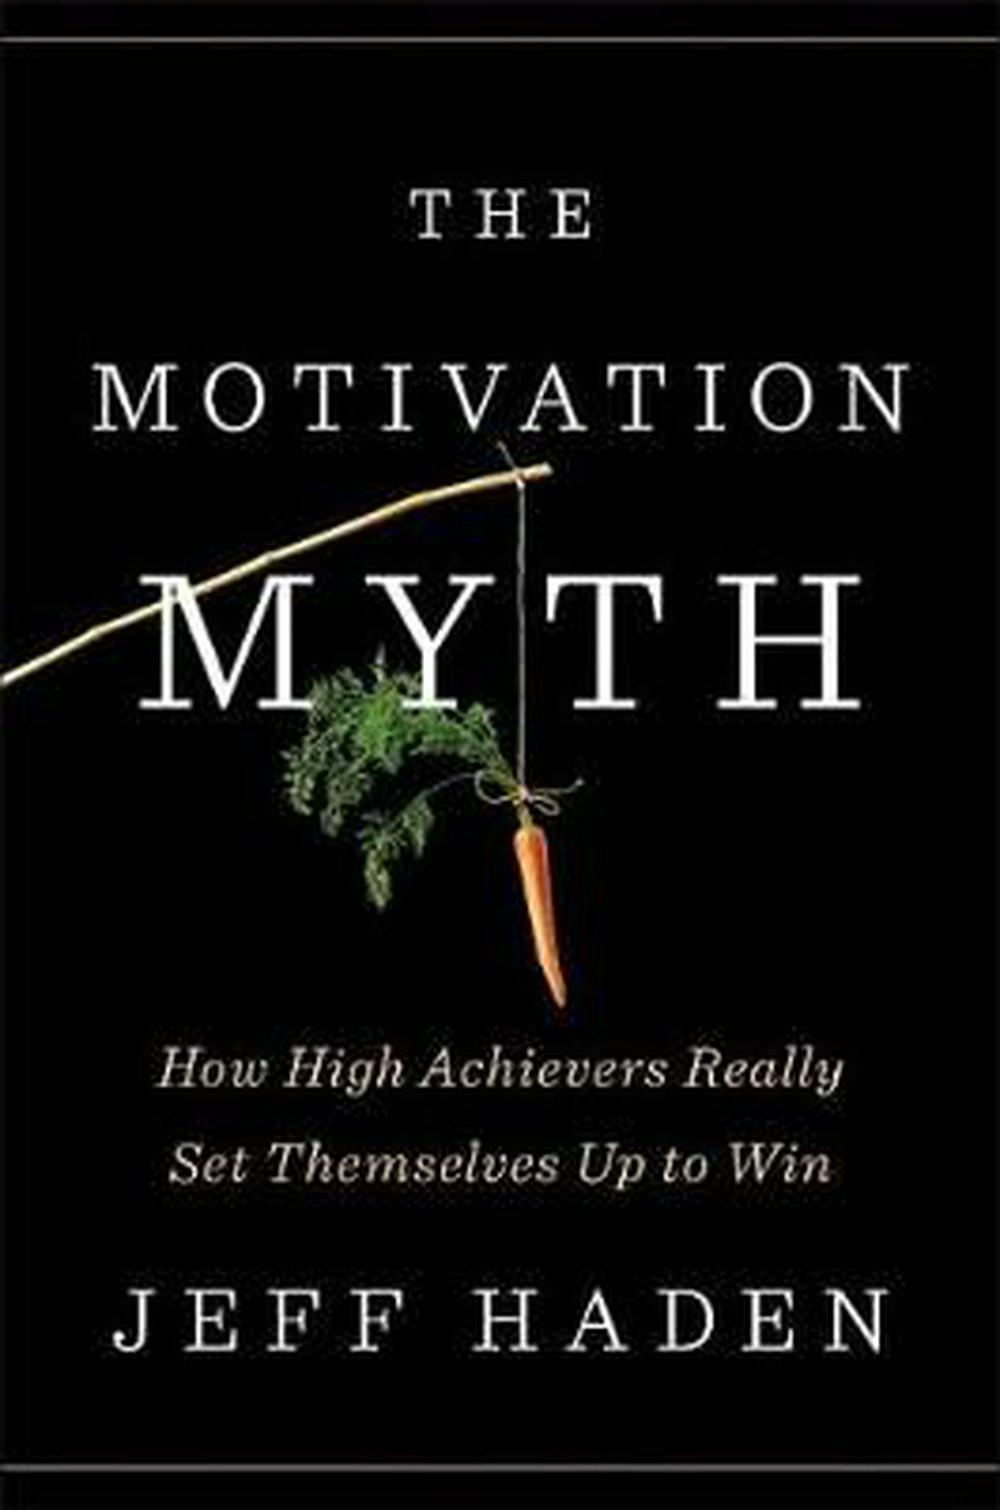 The Motivation Myth: How High Achievers Really Set Themselves Up to Win by Jeff Haden, ISBN: 9780399563768